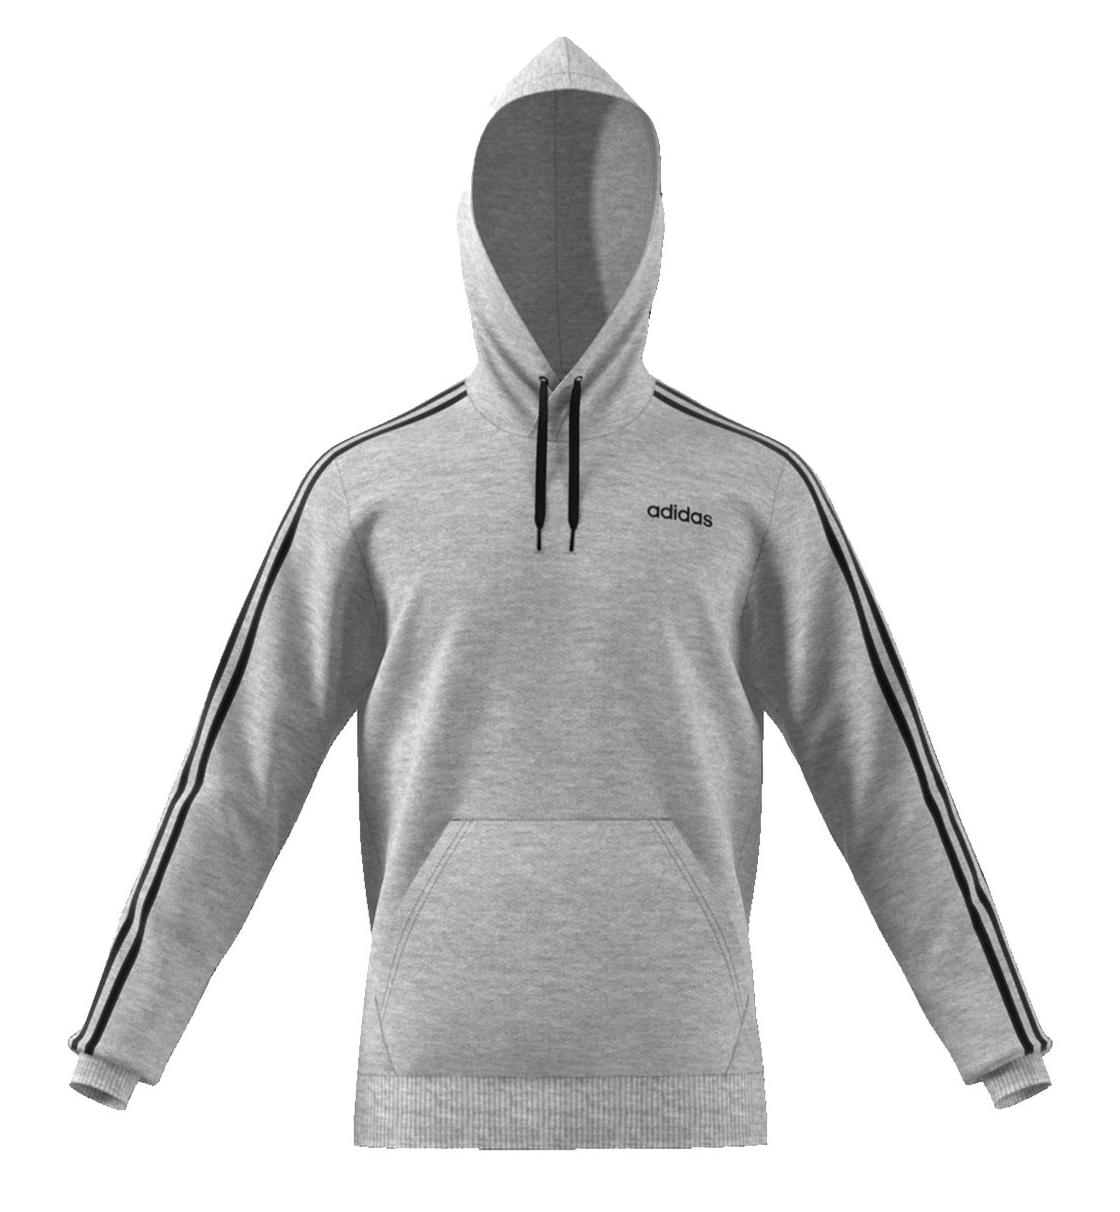 Adidas Fw19 Essentials 3 Stripes Pullover French Terry